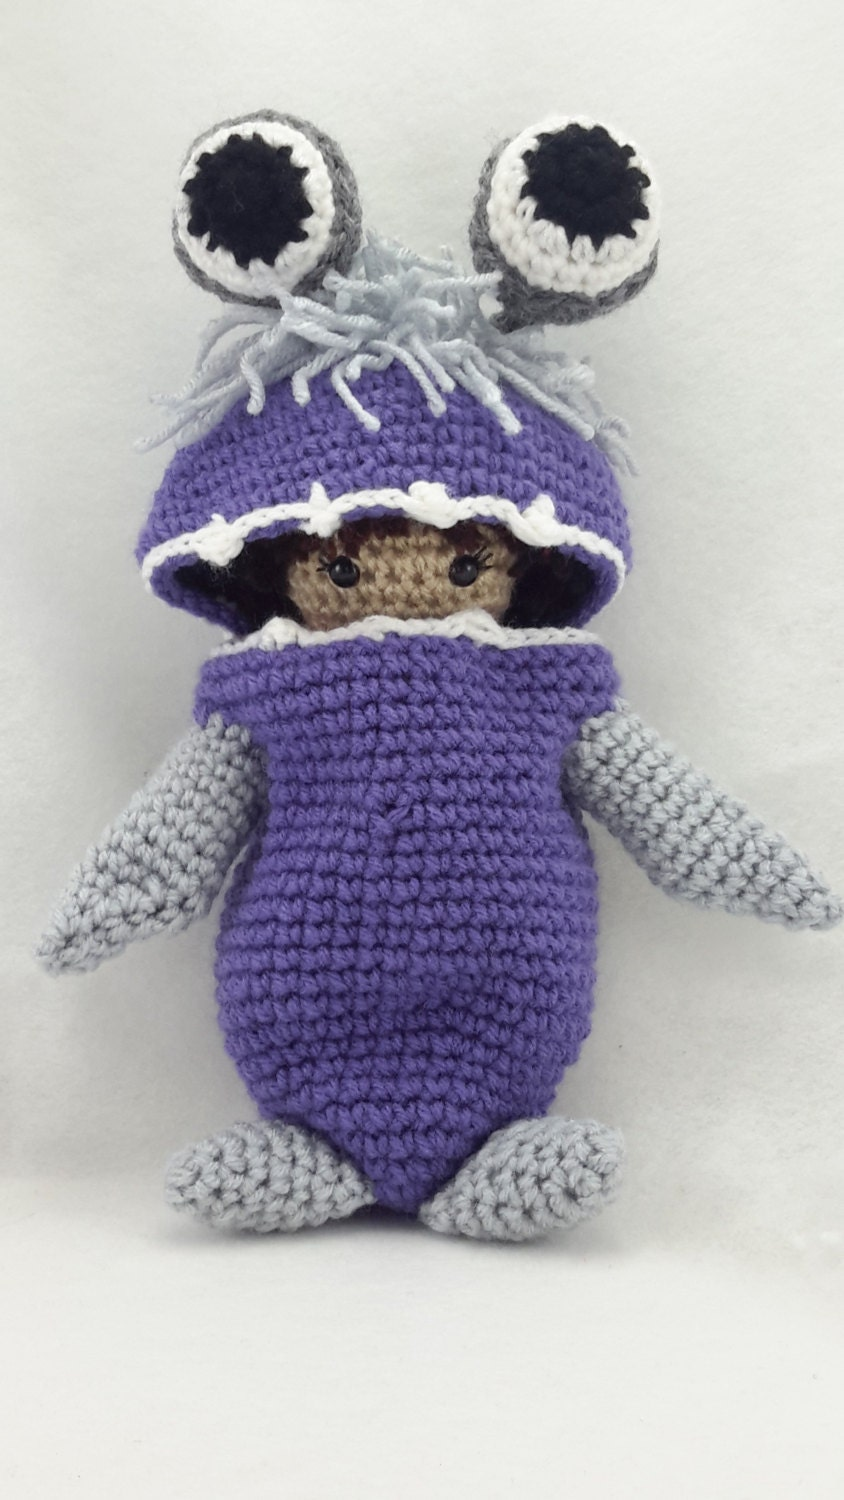 Crocheted Doll Inspired By Boo From Monsters Inc Boo Doll Etsy